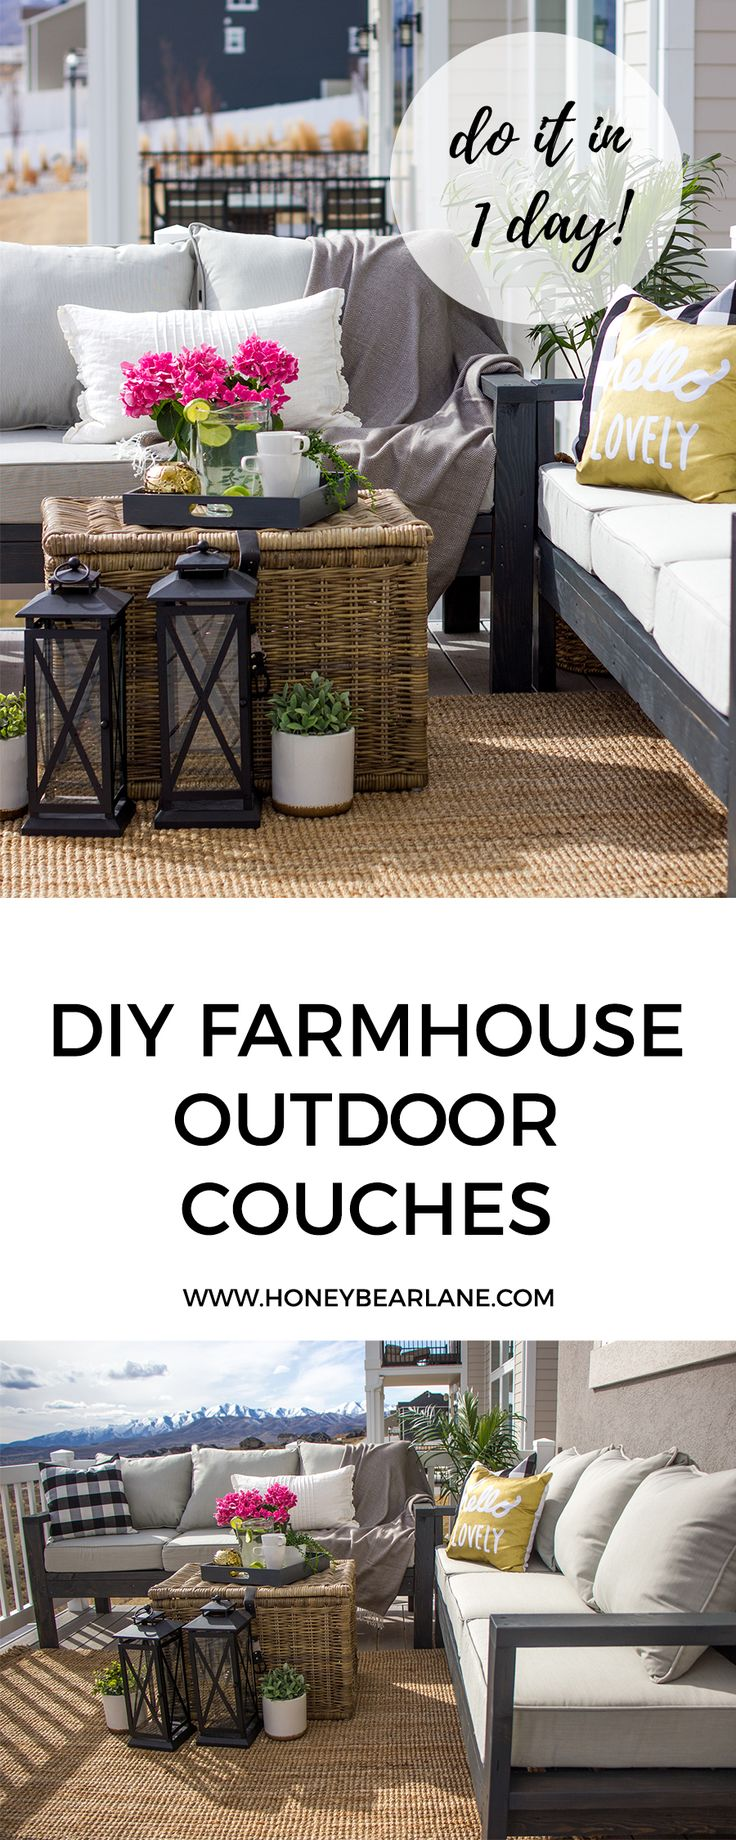 Backyard Furniture Ideas designing the backyard in our own diy way Diy Outdoor Furniture